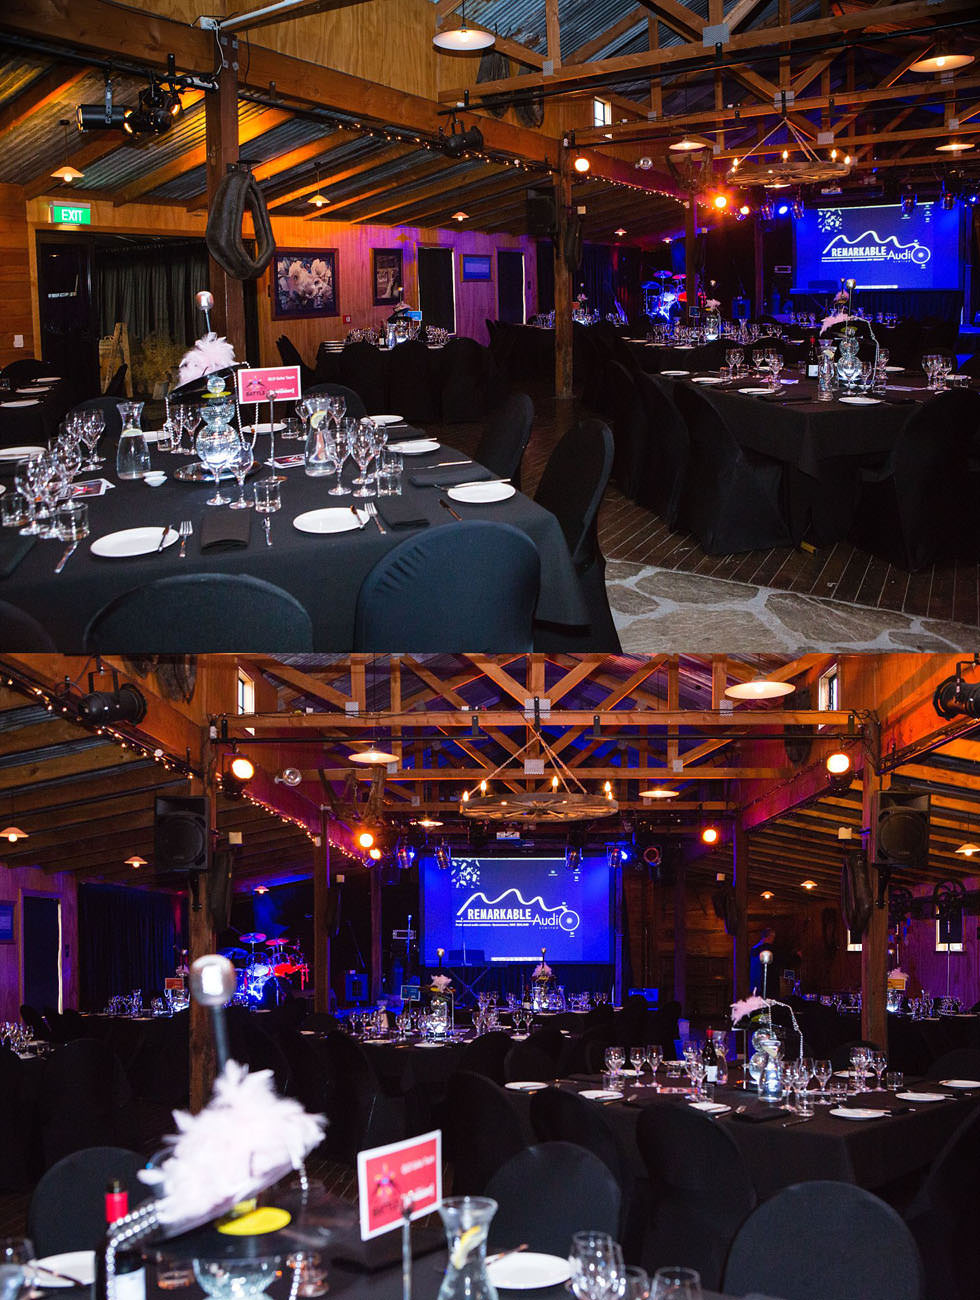 ArtyJ Photography | Events, The Barn Moonlight Country, Millbrook Resort, New Zealand, Queenstown, Hartmann, Conference, Corporate, Photography | Hartmann 2017 Part 3 | Corporate & Conference